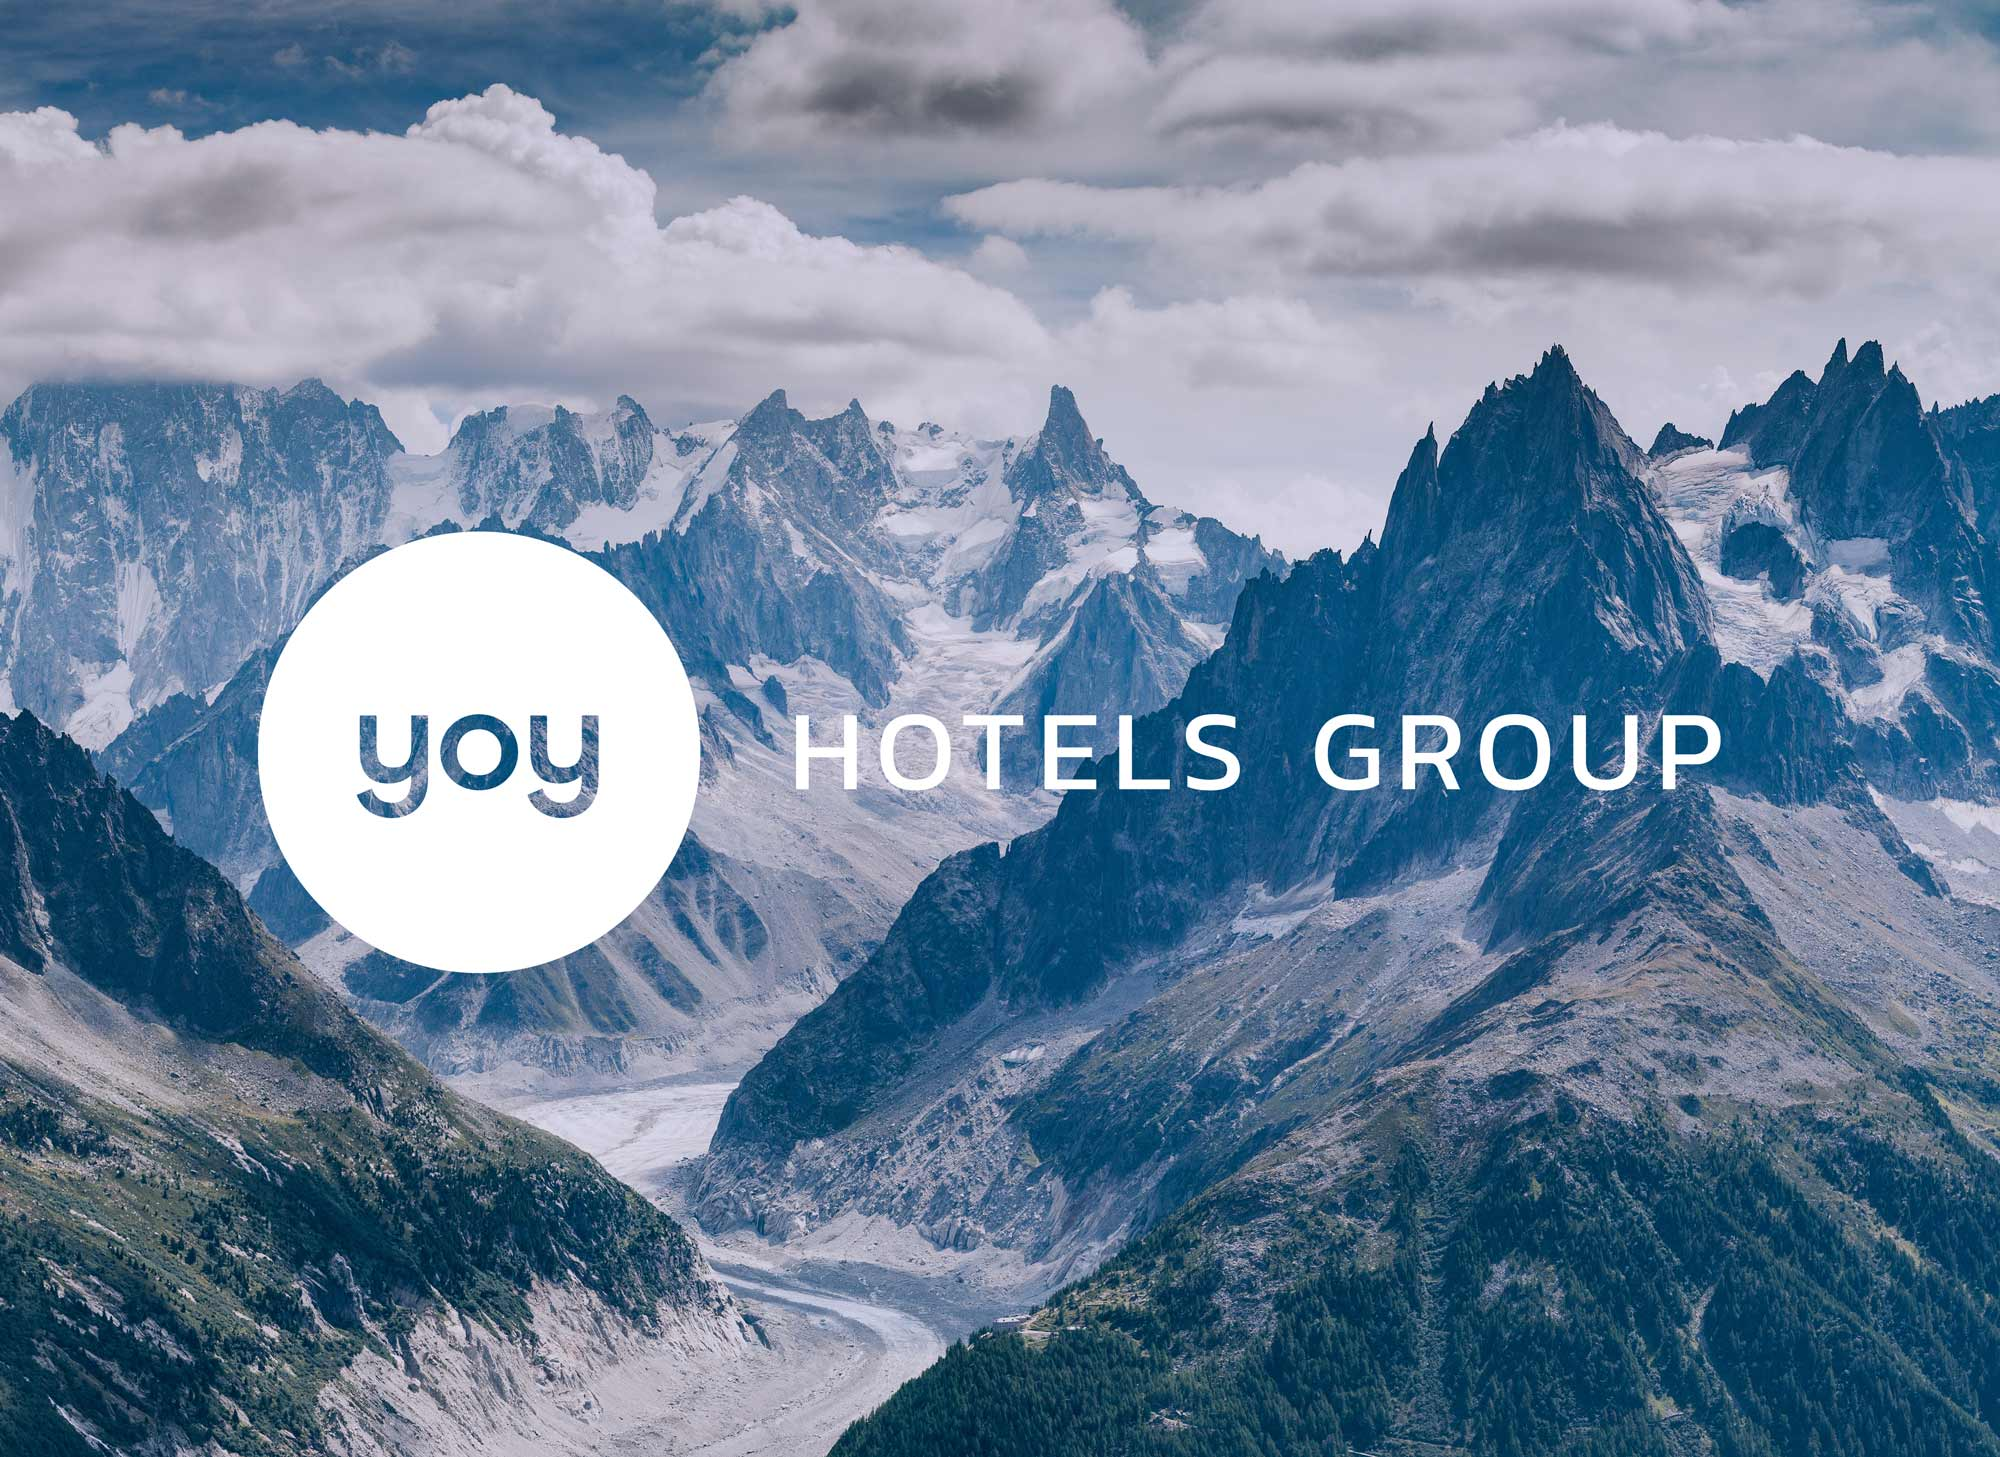 YOY Hotels Group